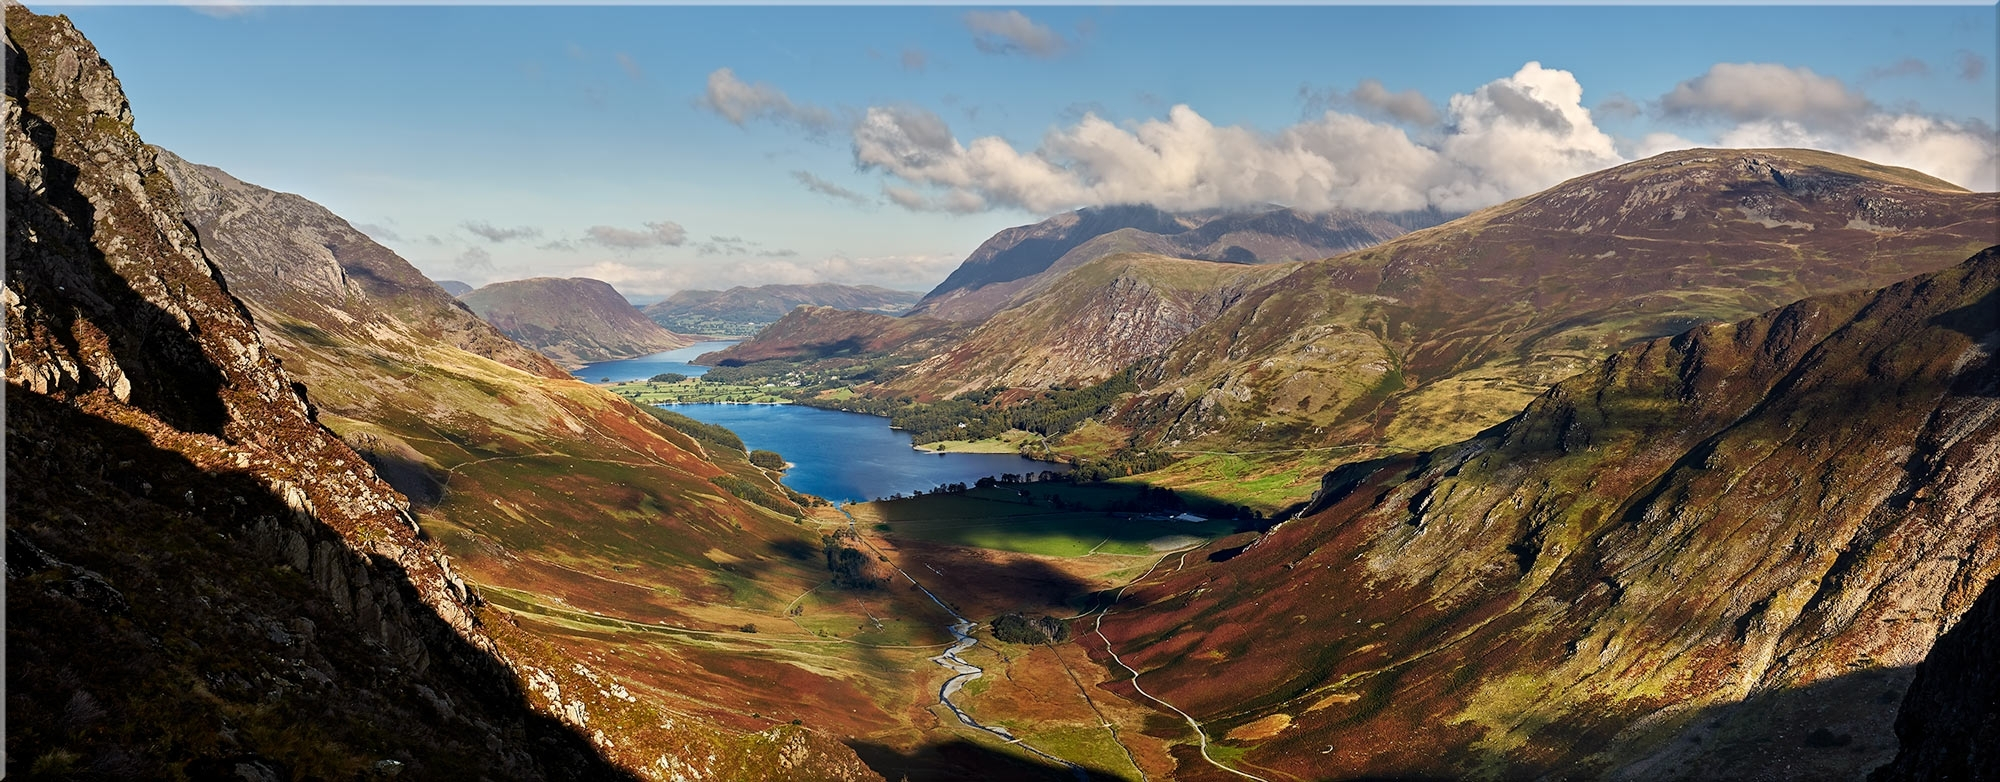 Buttermere Valley Green Crag – Lake District Canvas Prints Pertaining To Most Up To Date Lake District Canvas Wall Art (View 2 of 15)